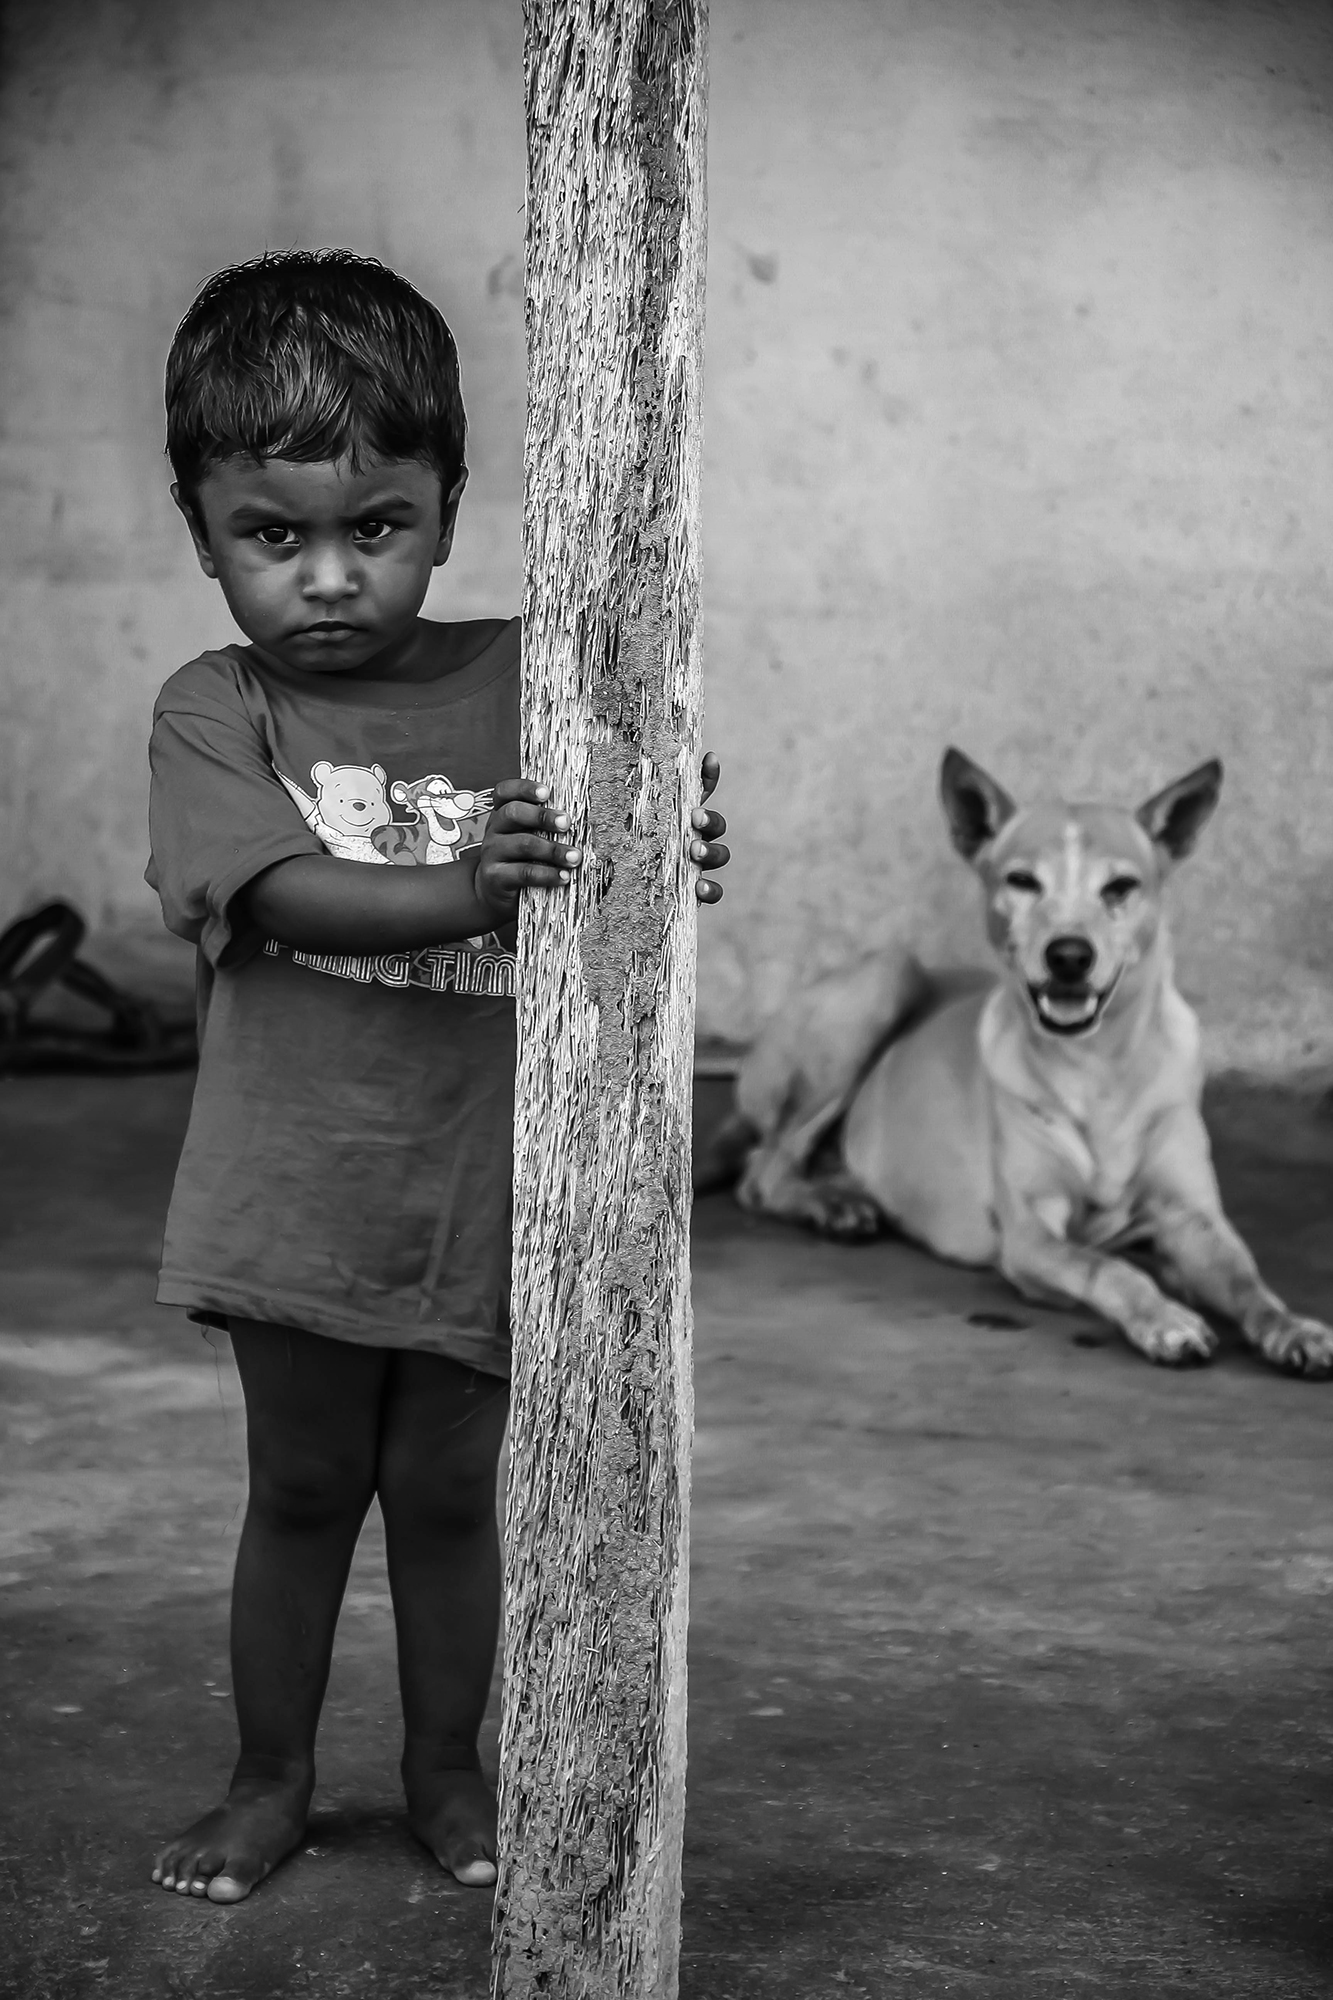 My cousin's younger brother in a village.